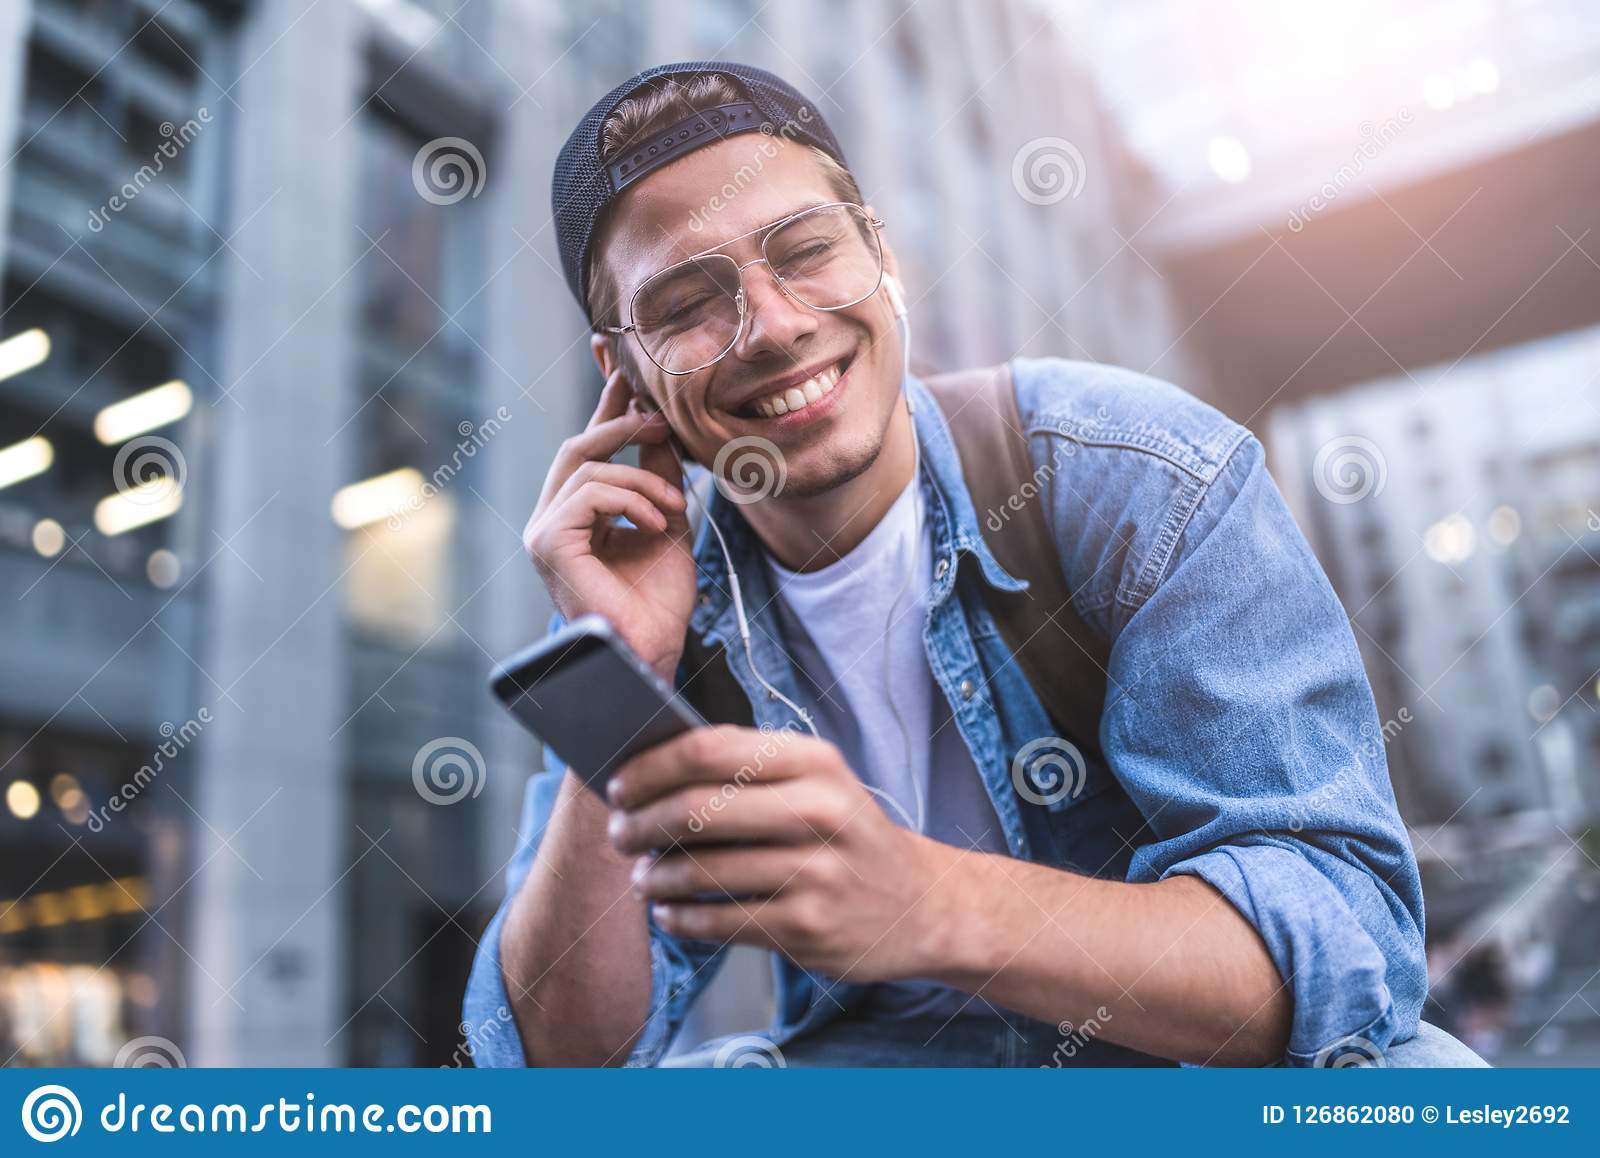 Happy Man Listening To Music With Headphones From A